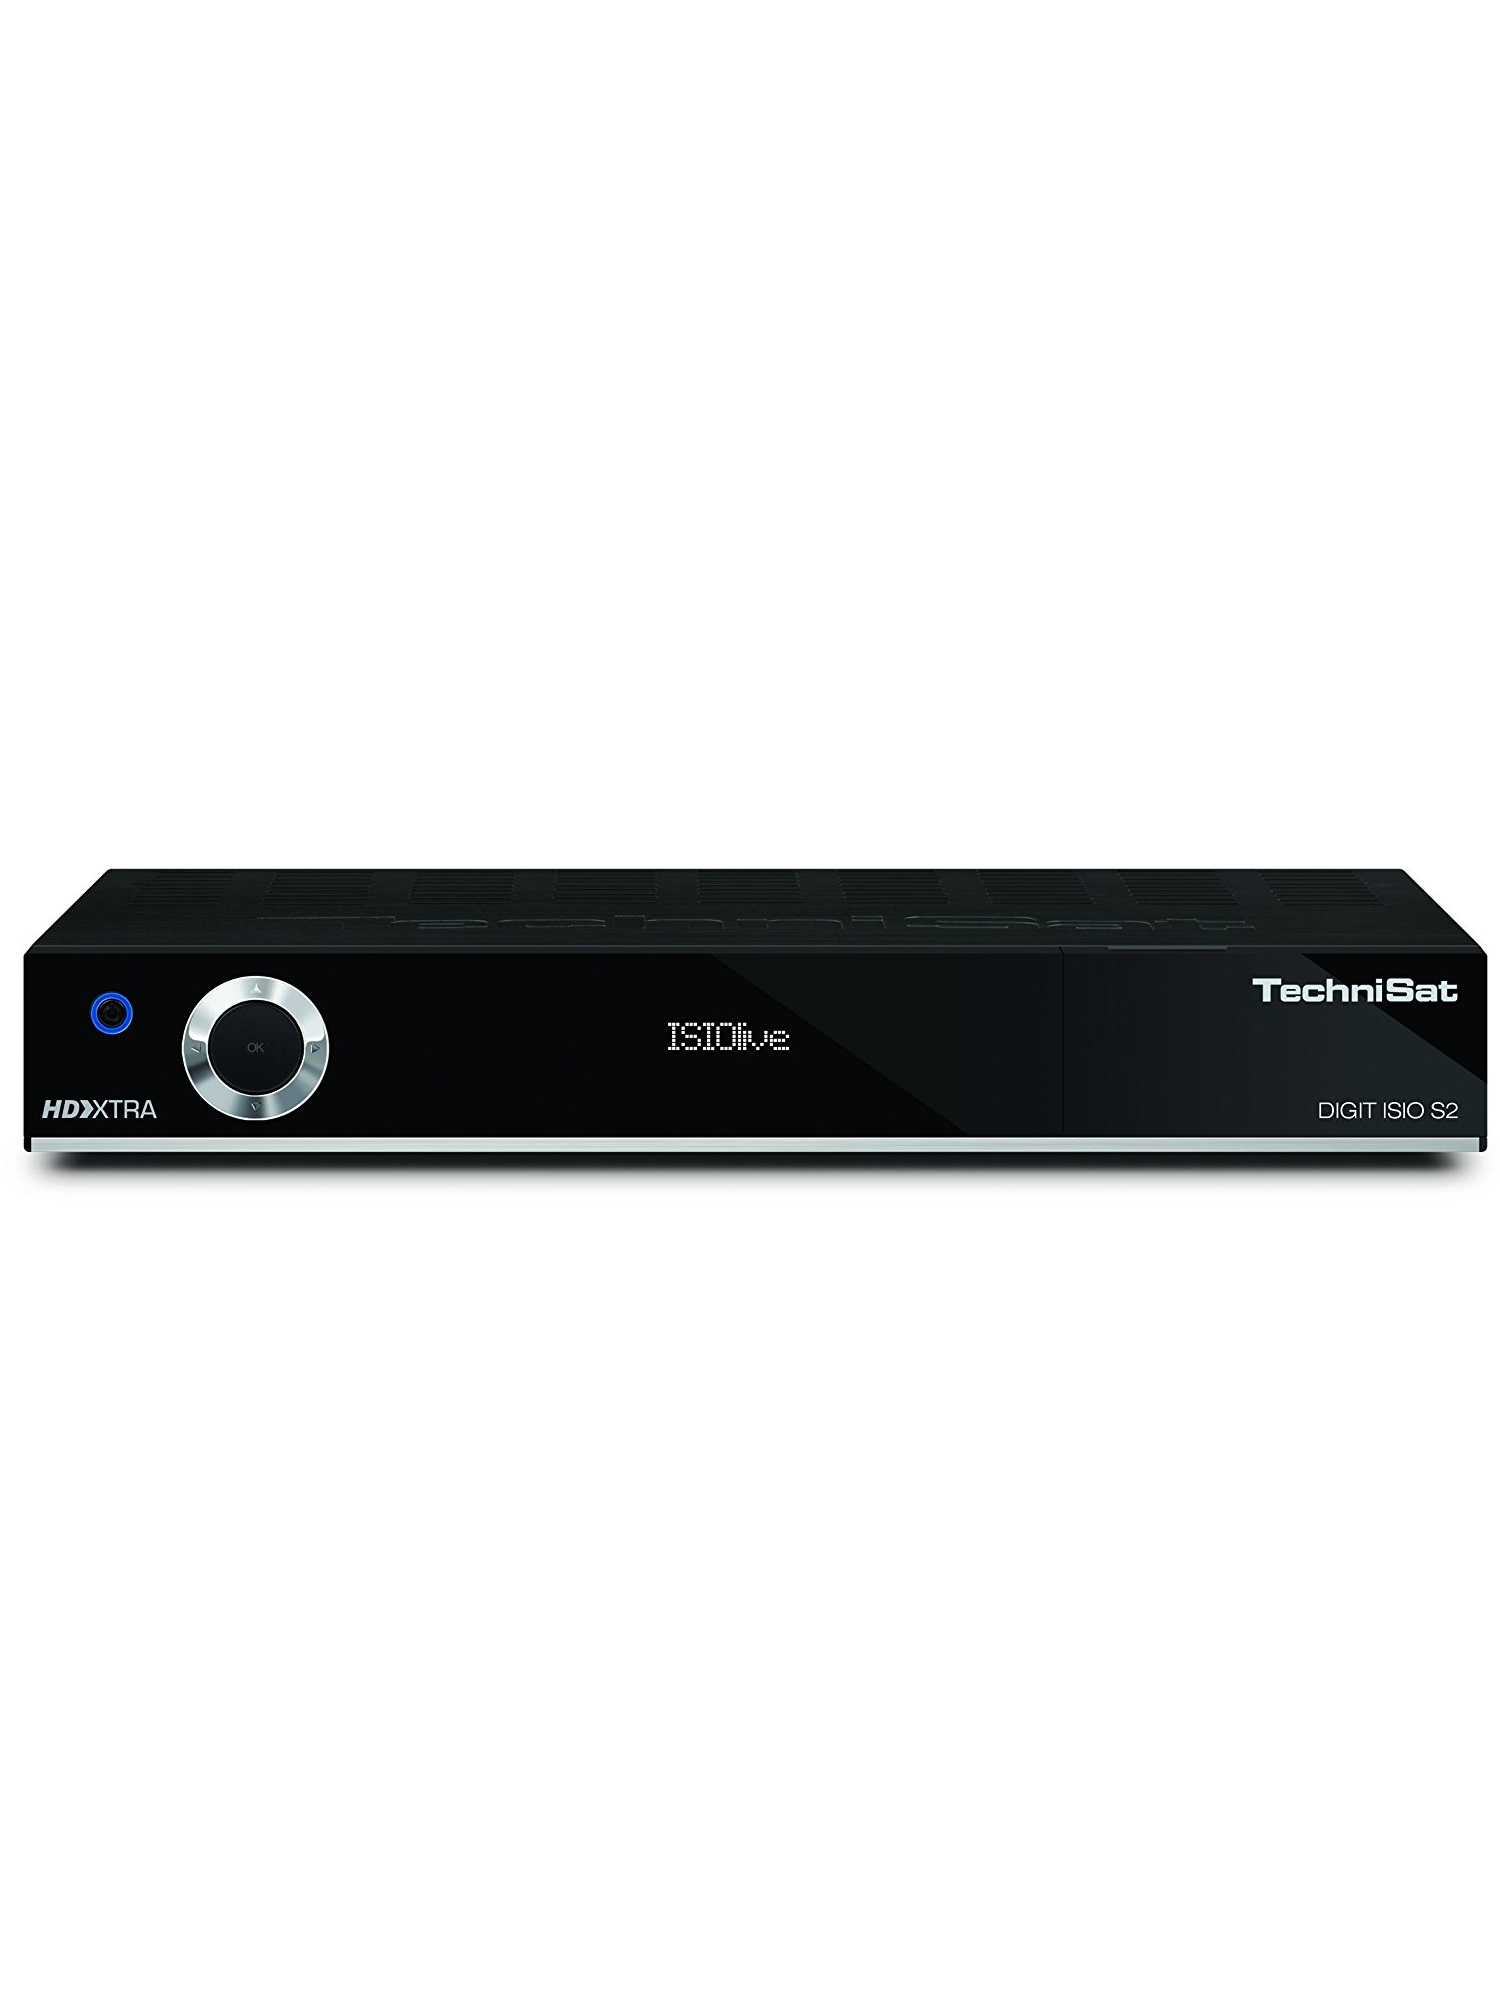 TechniSat DIGIT ISIO S2 Satellit Schwarz TV Set-Top-Box VFD CI+ DVB-S/S2 HDMI USB 2.0 Fast Ethernet 230V AC (0000/4756)